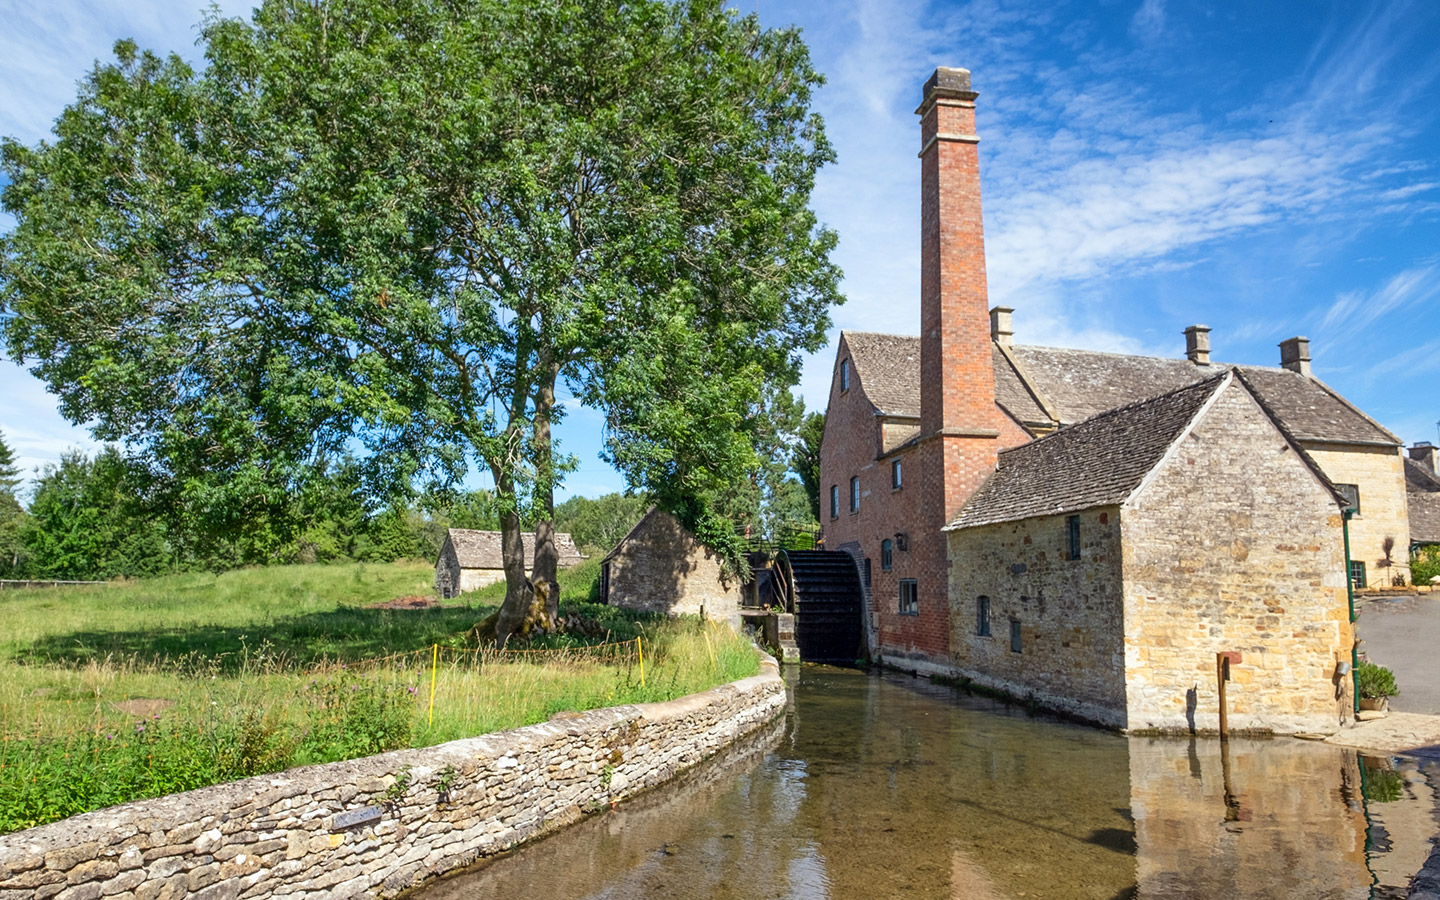 Mill at Lower Slaughter in the Cotswolds